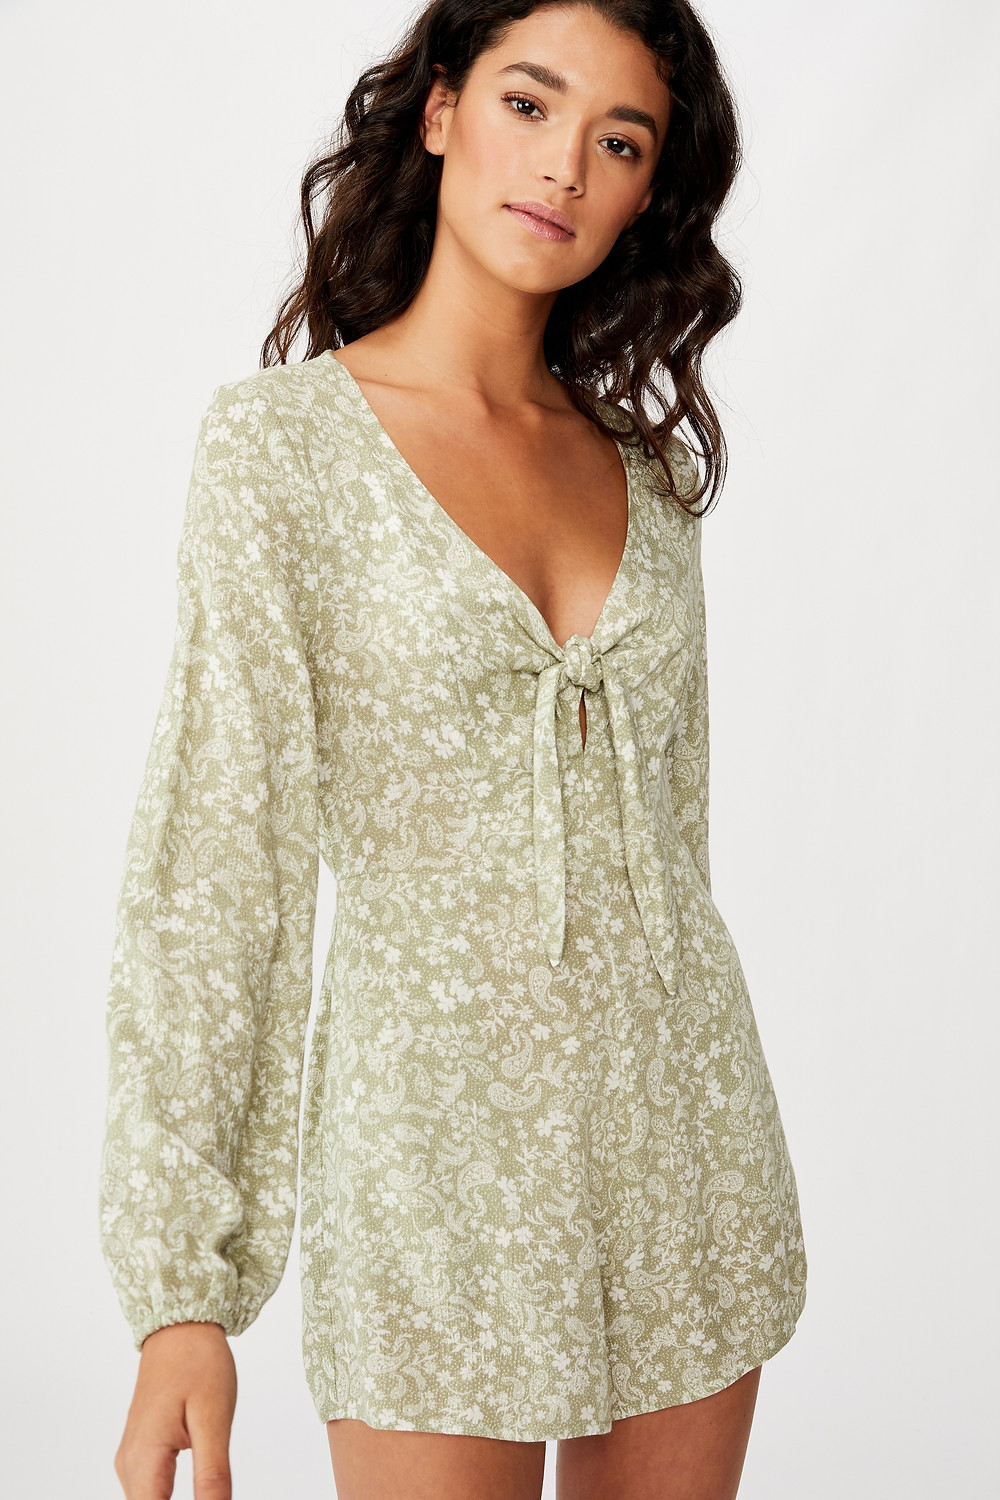 Woven Alena Tie Front Long Sleeve Playsuit Detailshttps://cottonon.com/AU/woven-alena-tie-front-long-sleeve-playsuit/2005535.html $39.99